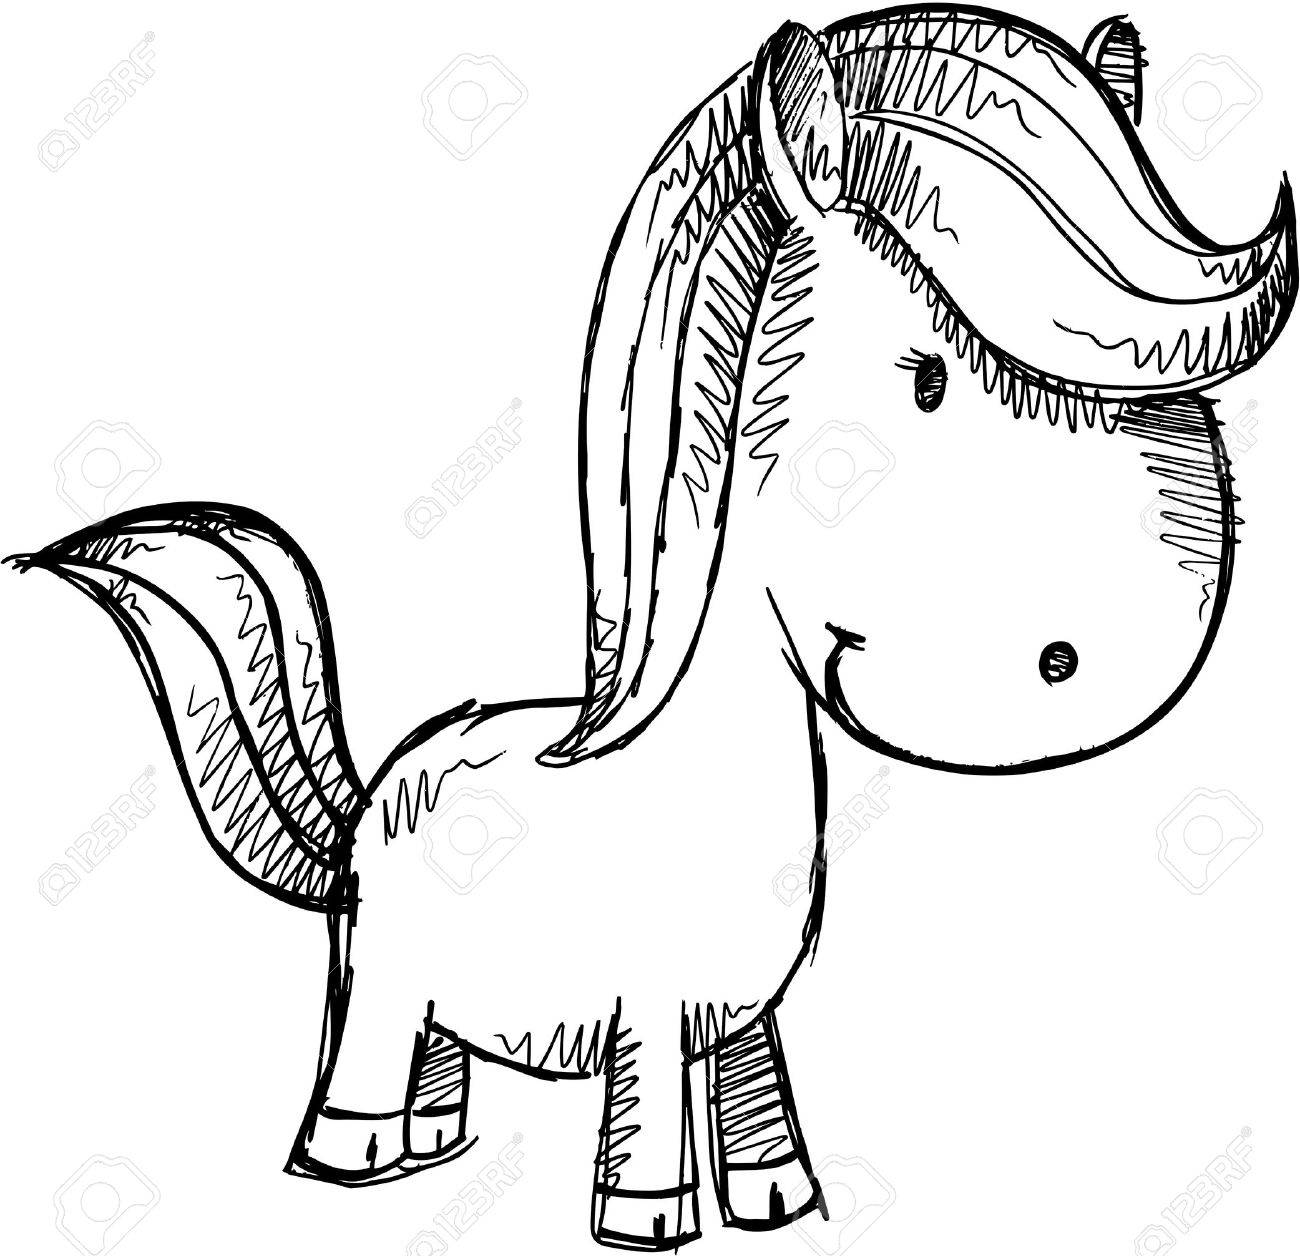 Pony Horse Sketch Doodle Illustration Art Royalty Free Cliparts Vectors And Stock Illustration Image 19266018